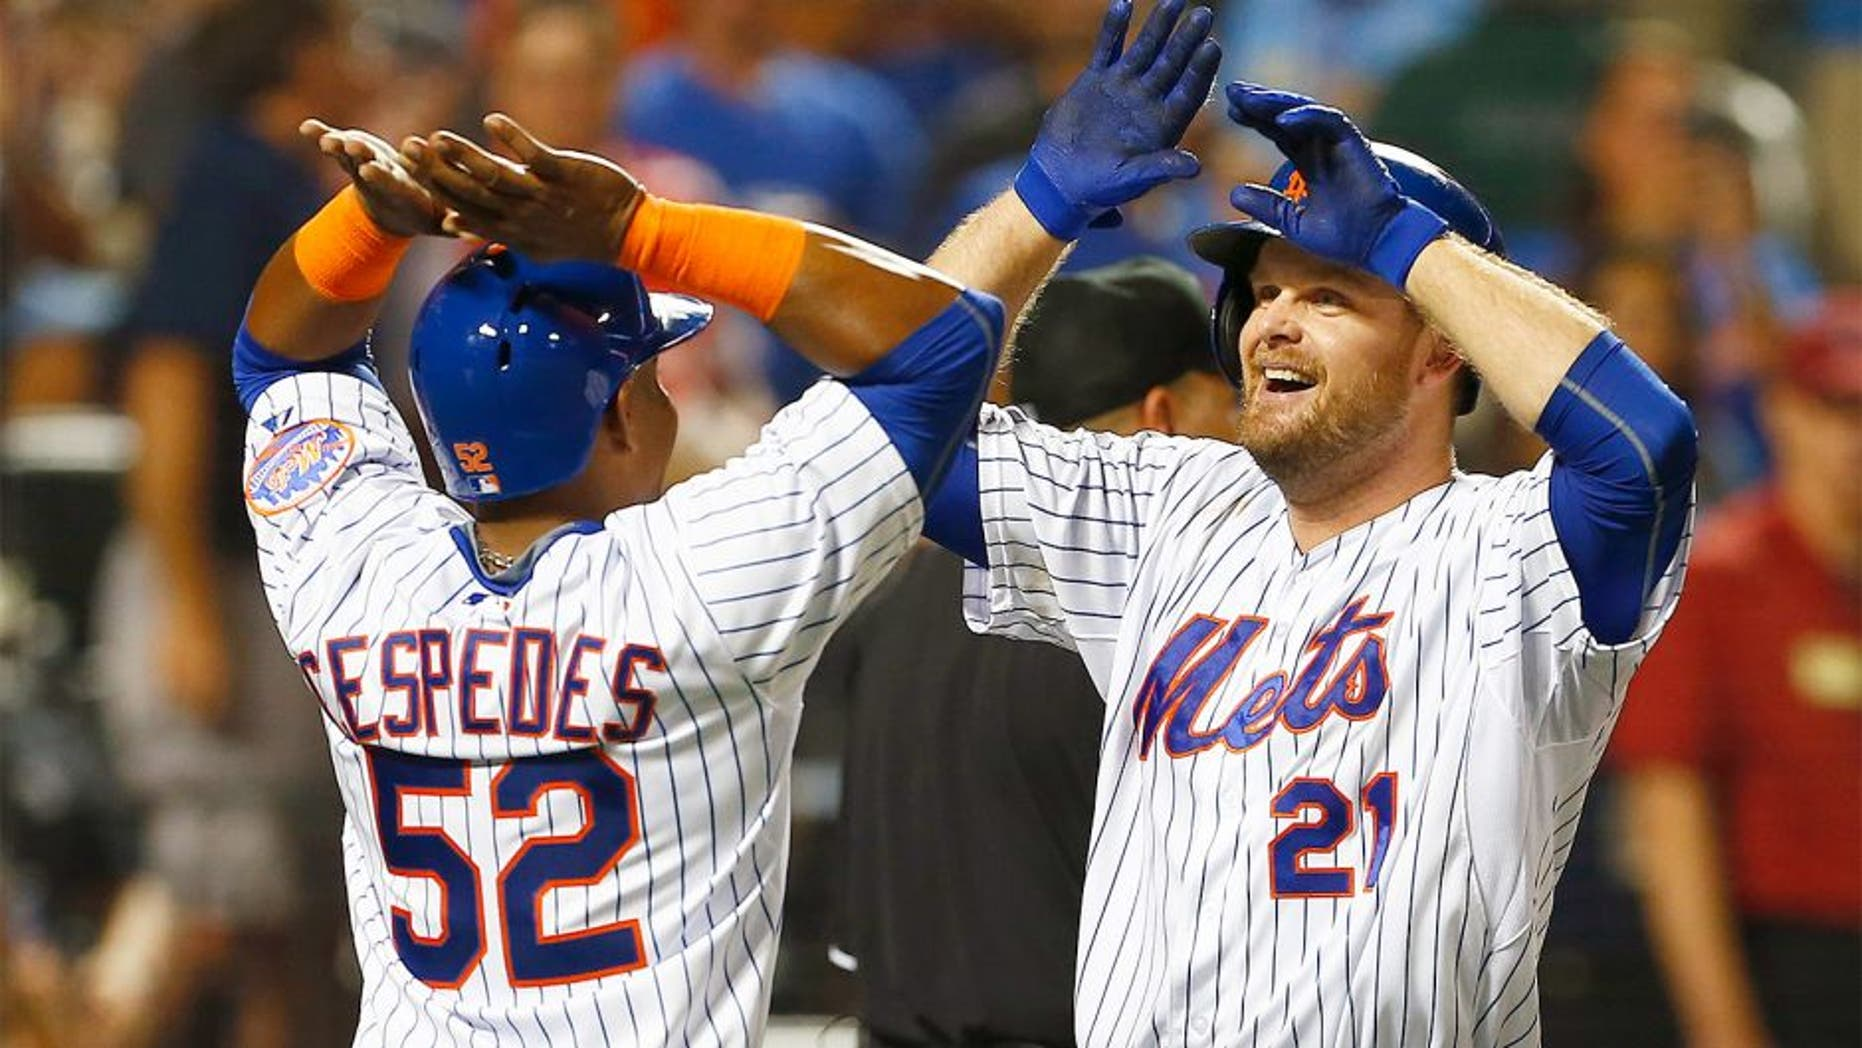 NEW YORK, NY - AUGUST 2: Lucas Duda #21 of the New York Mets is congratulated by Yoenis Cespedes #52 after both scored on Duda's two run home run during the third inning against the Washington Nationals on August 2, 2015 at Citi Field in the Flushing neighborhood of the Queens borough of New York City. (Photo by Rich Schultz/Getty Images)